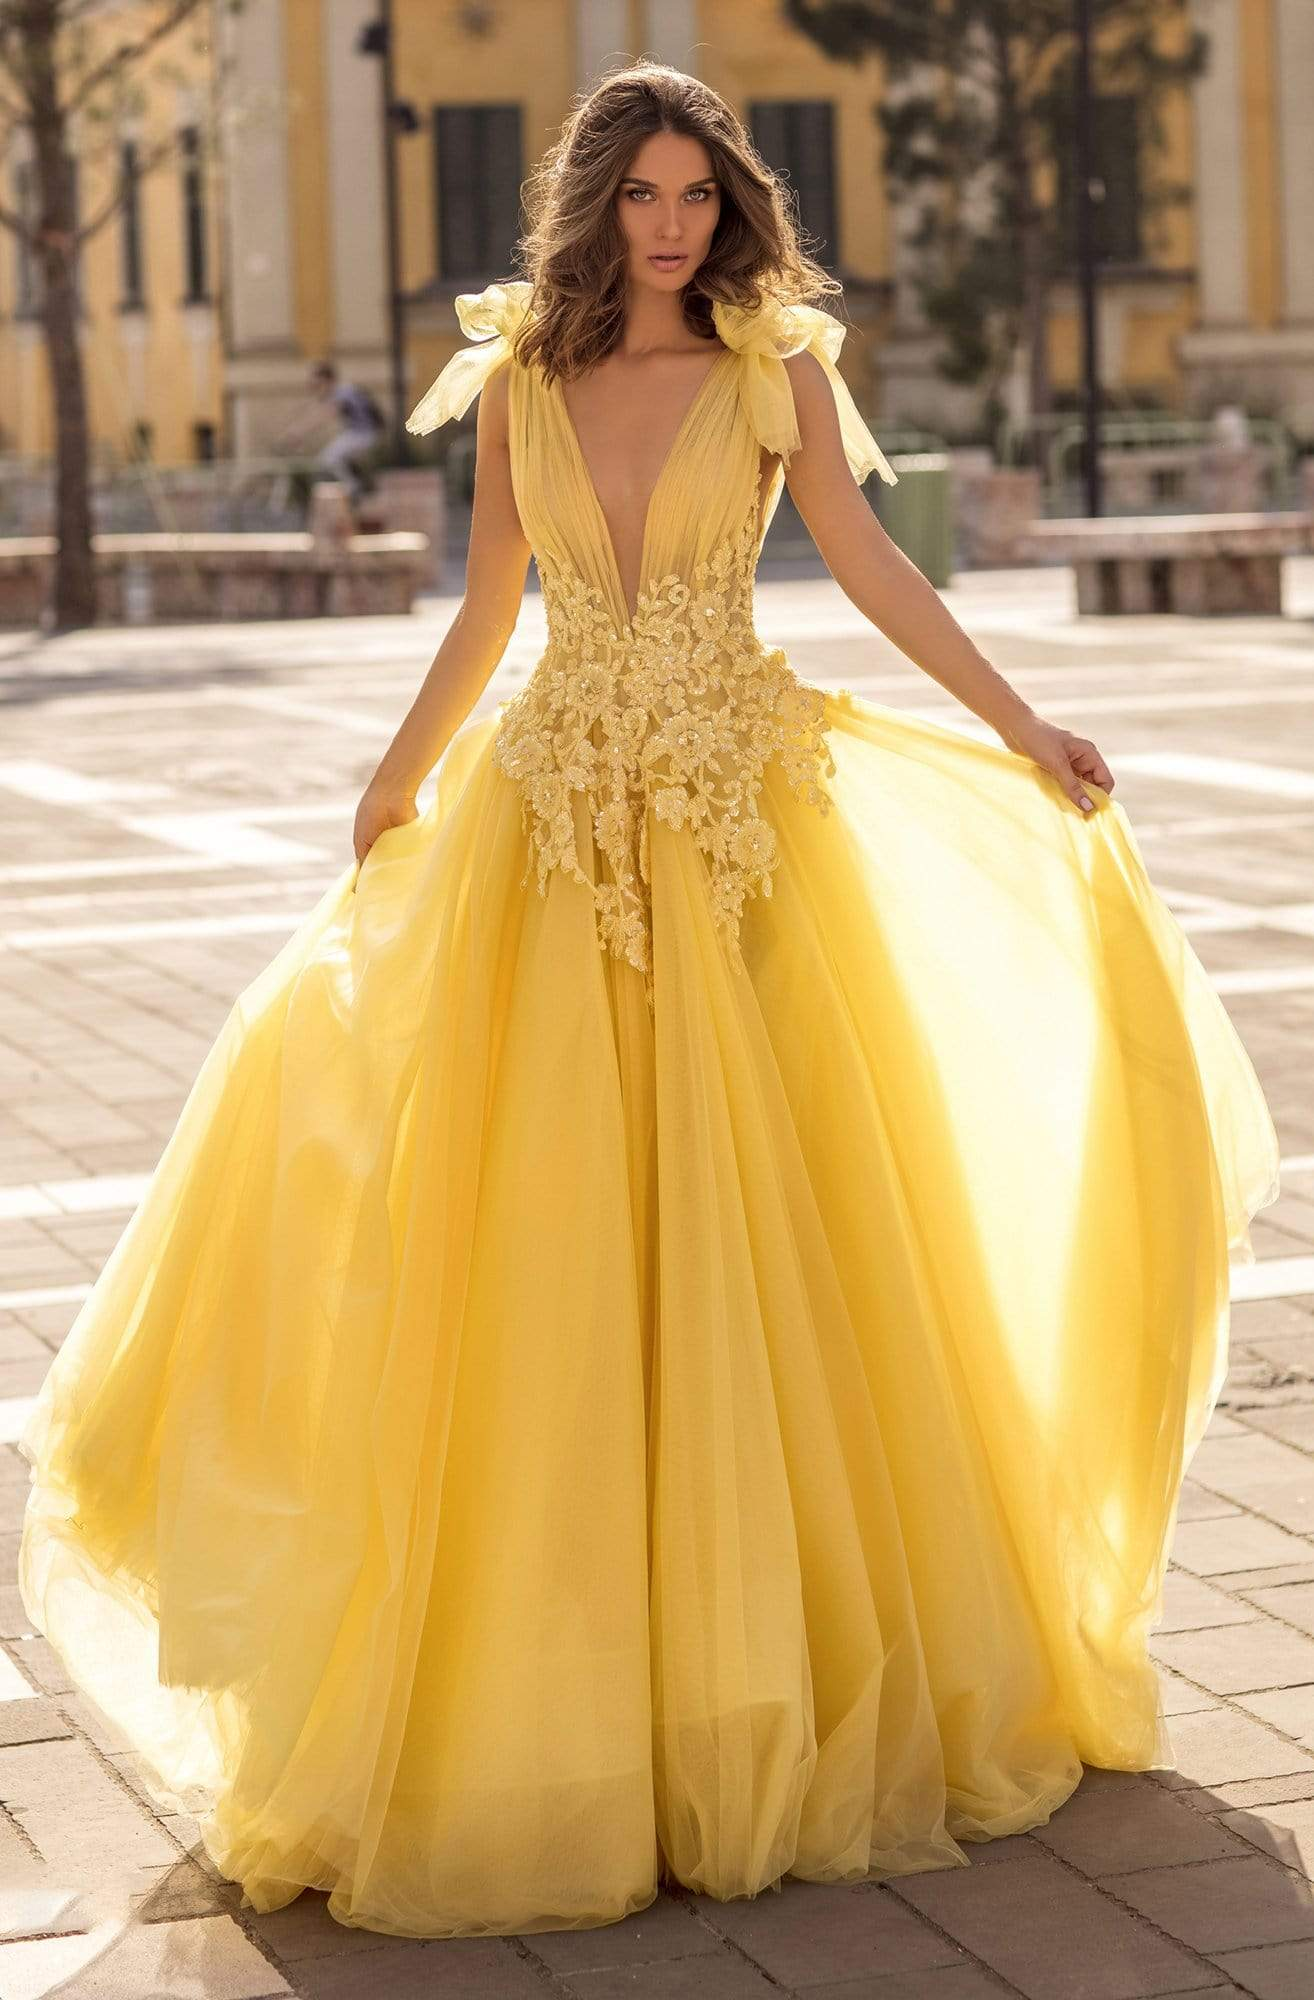 Tarik Ediz - 93927 Beaded Lace Plunging V-Neck Ballgown Ball Gowns 0 / Yellow